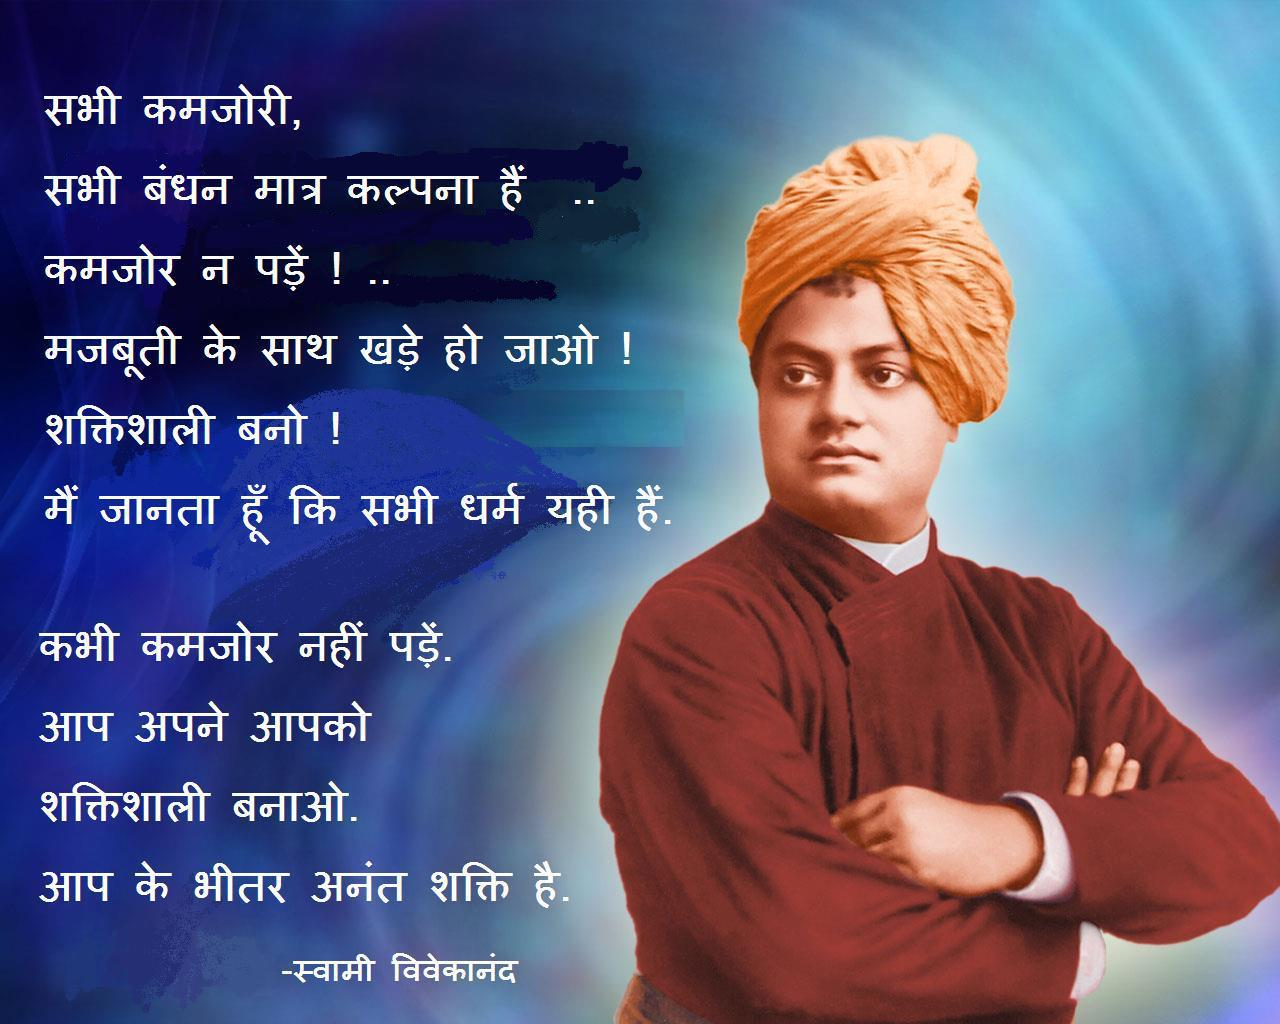 swami vivekananda quotes in hindi quotesgram